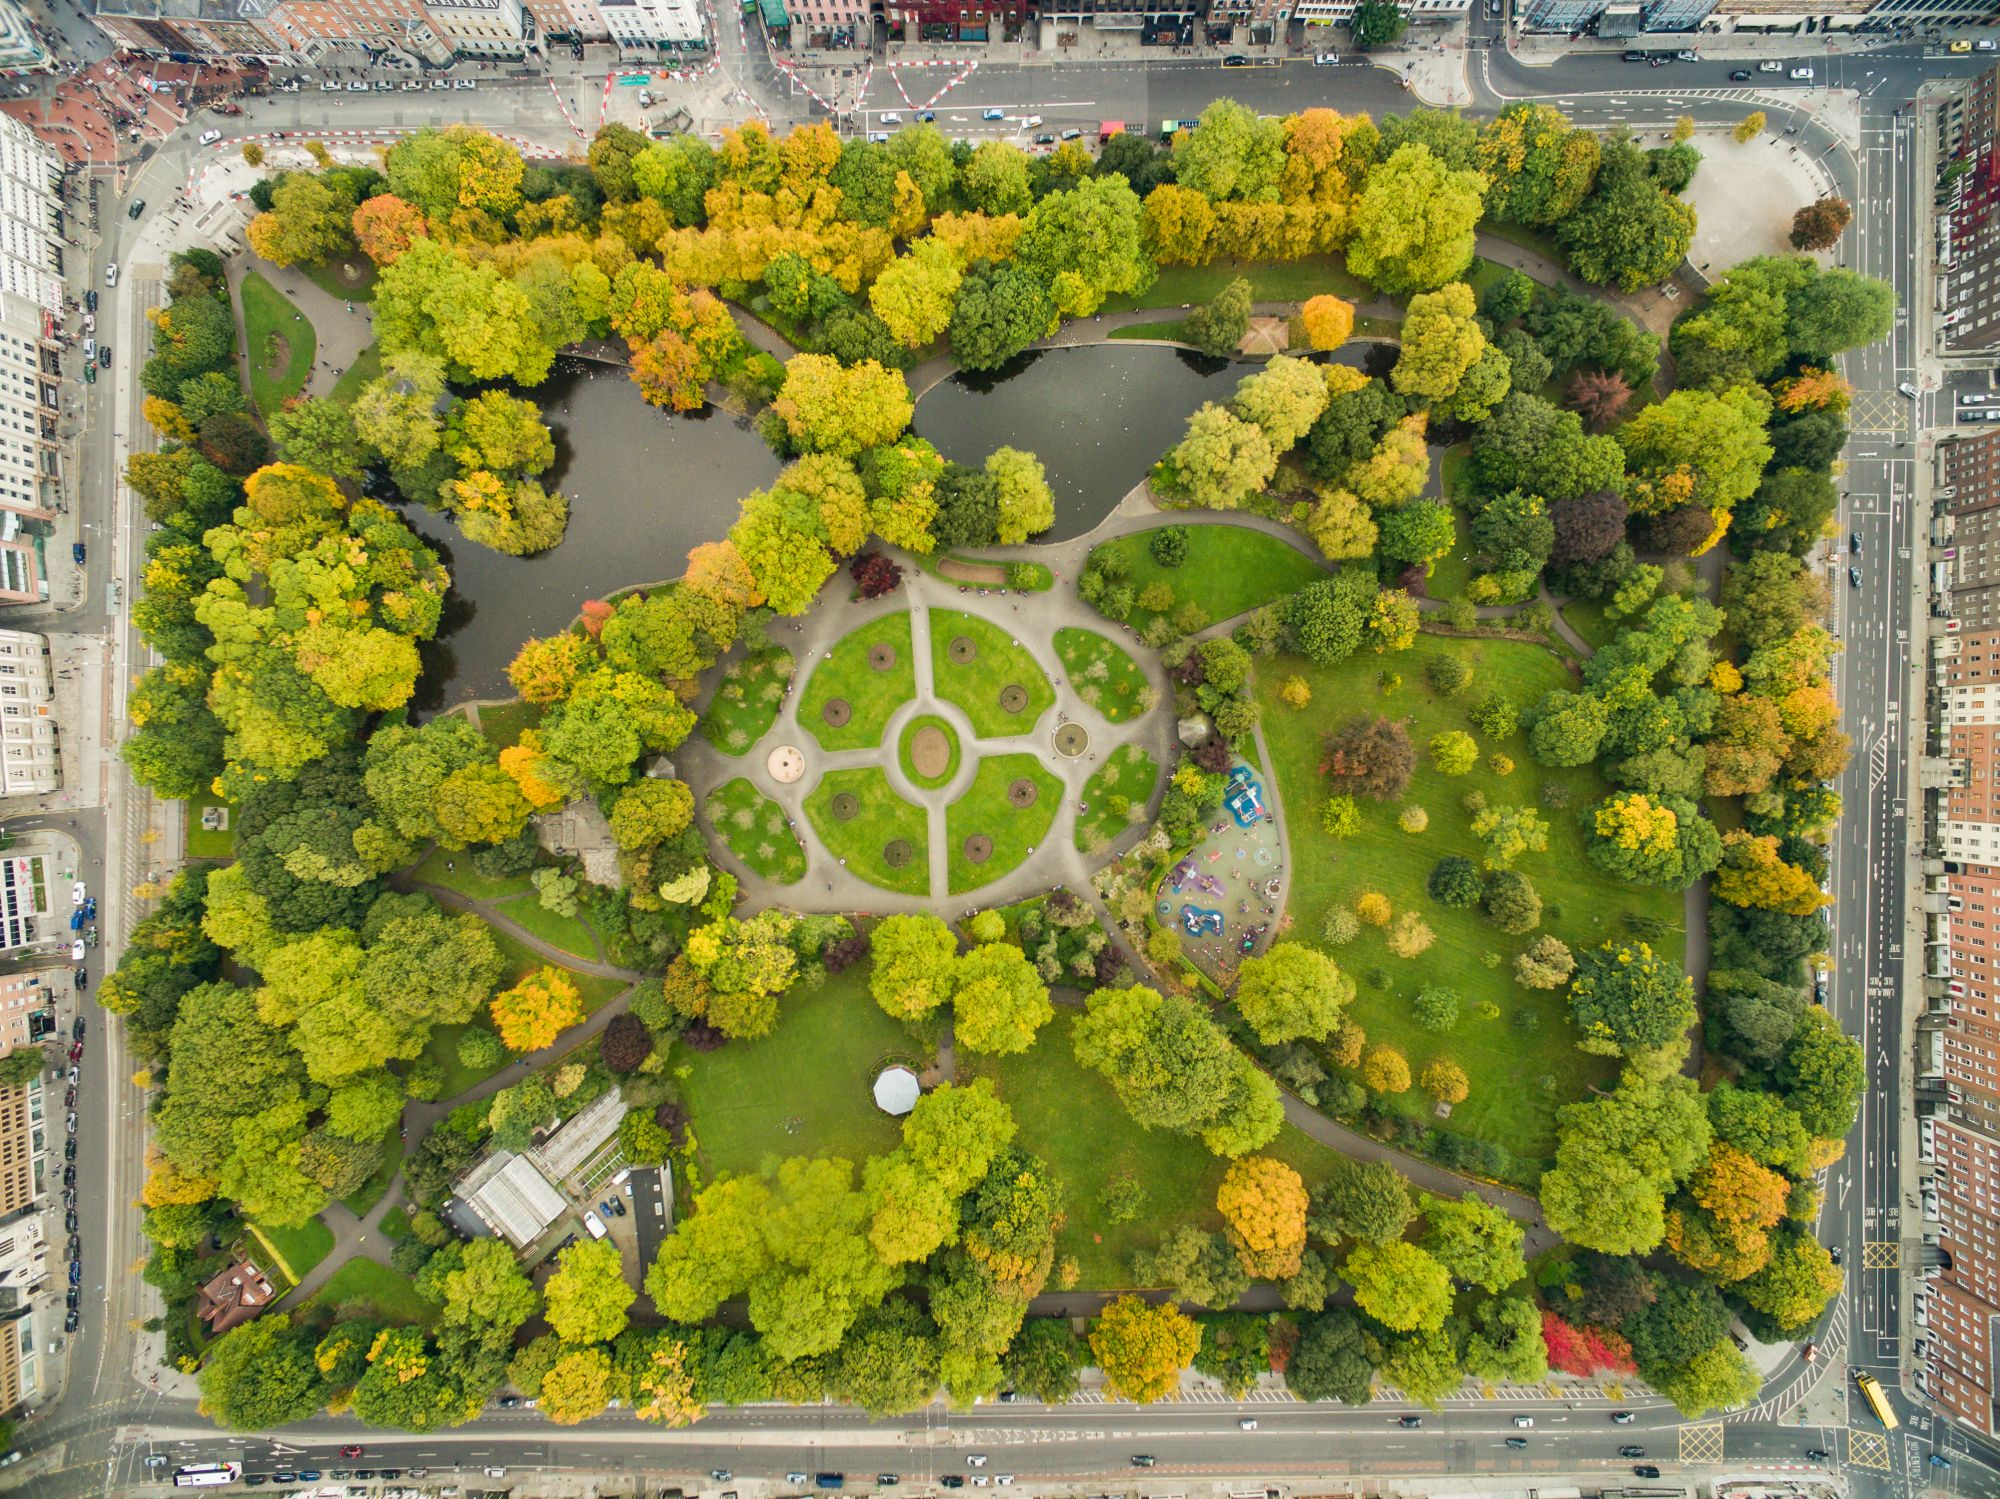 St. Stephen's Green ist ein Park im Zentrum der Stadt Dublin. Foto: Dronepicr (edited by King of Hearts), CC BY 3.0